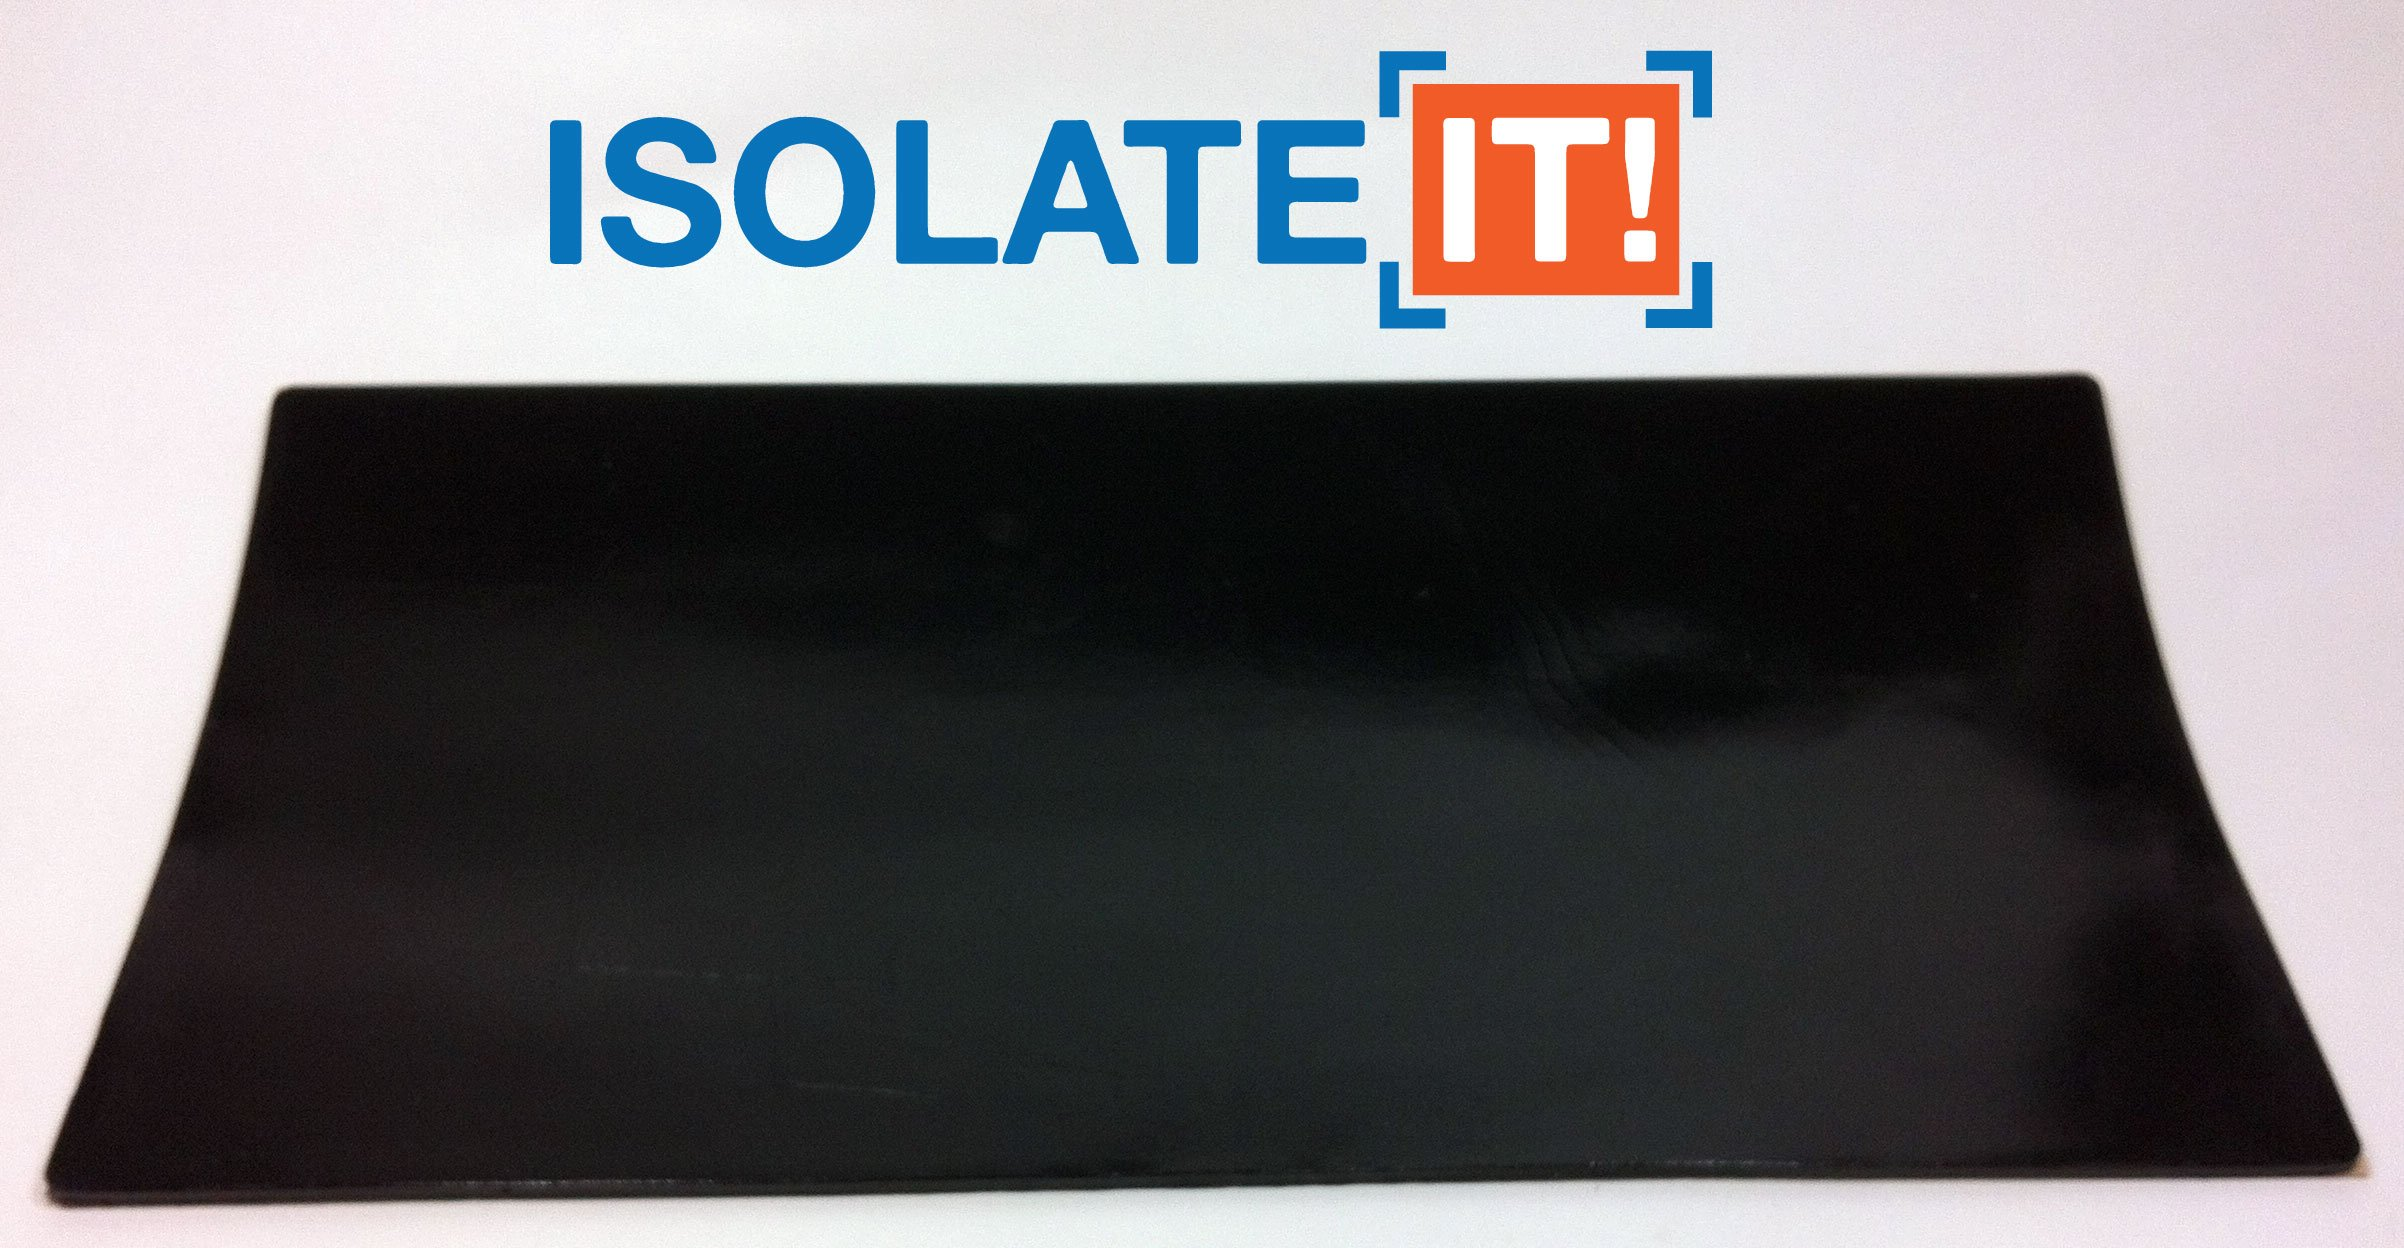 Isolate It!: Sorbothane Acoustic & Vibration Damping Film 40 Duro with 3M Adhesive Backing (0.188 x 6 x 12in) by Isolate It!